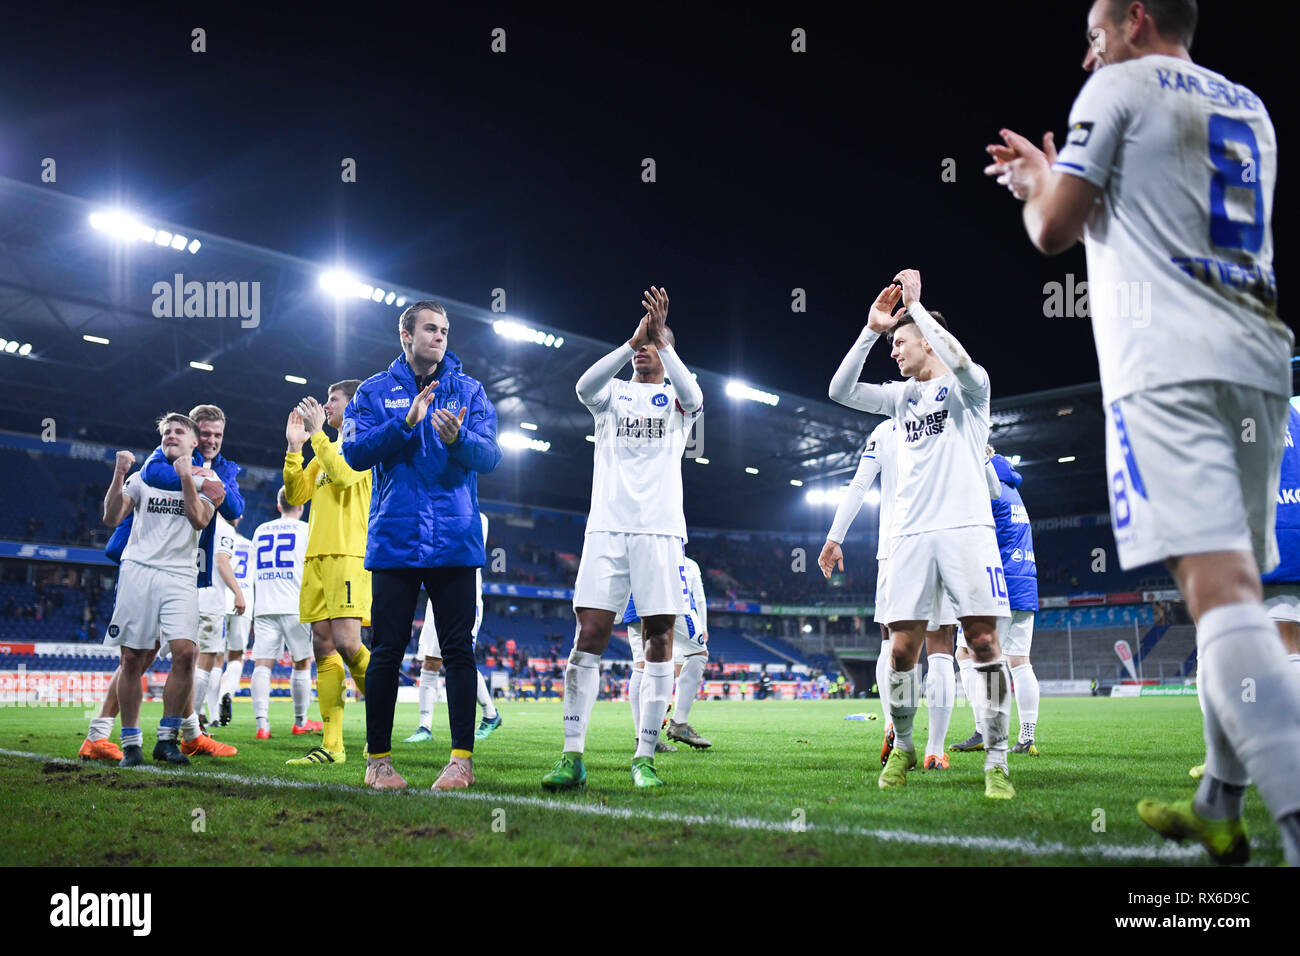 Duisburg, Deutschland. 08th Mar, 2019. final jubilation Karlsruher SC. GES/football/3rd league: Krefelder football club Uerdingen - Karlsruher SC, 08.03.2019 Football/Soccer: 3rd League: KFC Uerdingen vs Karlsruher SC, Duisburg, March 8, 2019 | usage worldwide Credit: dpa/Alamy Live News - Stock Image